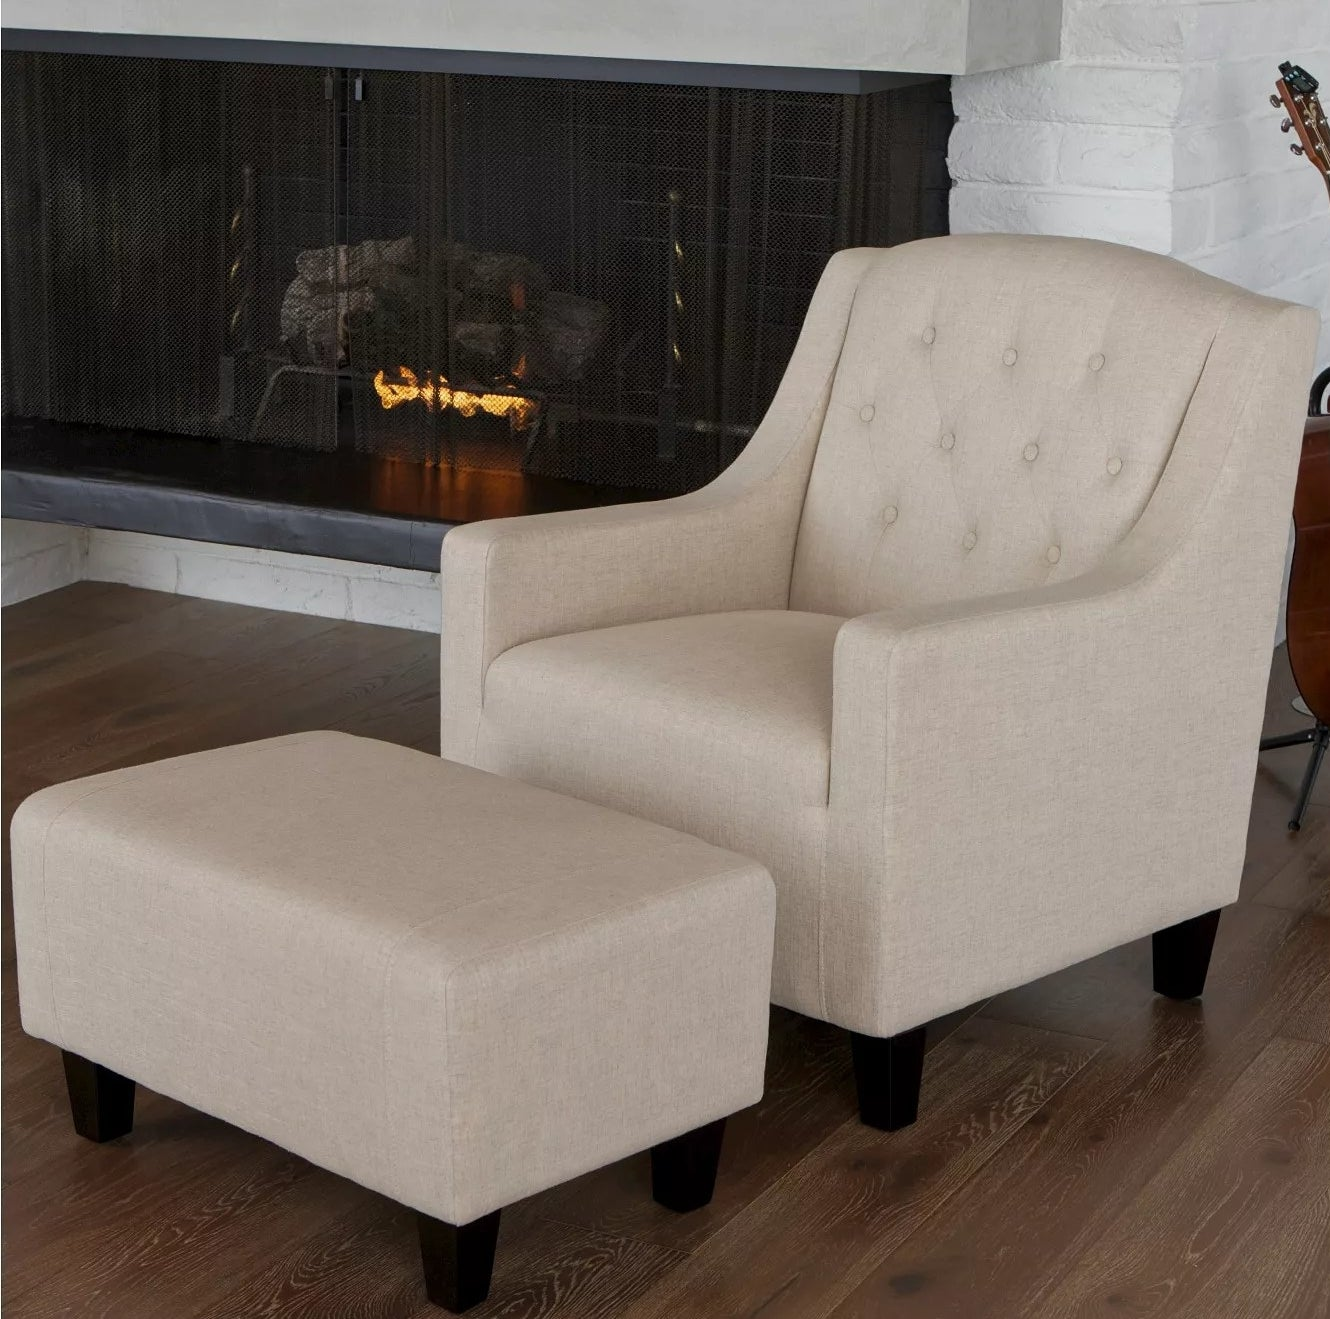 The chair and ottoman in beige